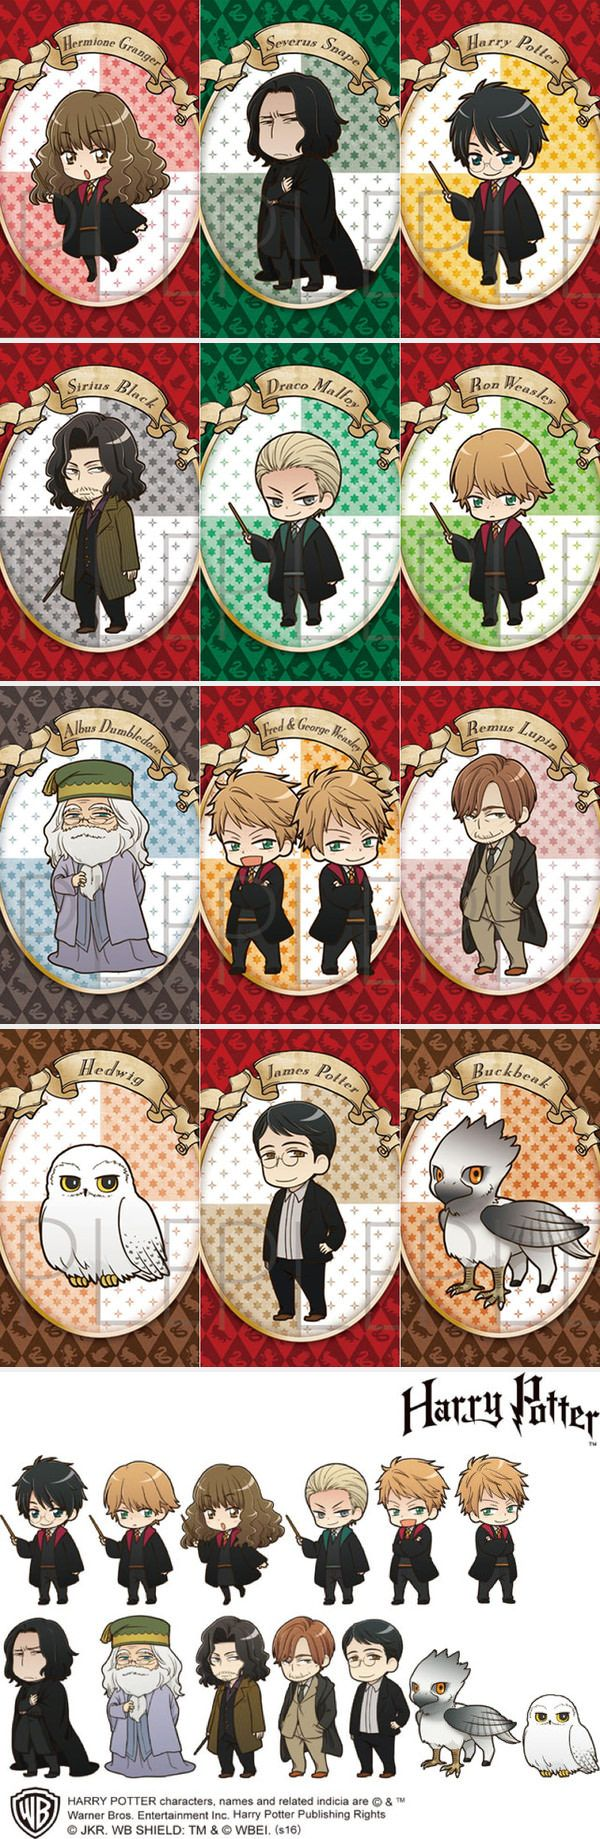 The Official Anime Versions of Harry Potter Characters Are Out! - 9GAG